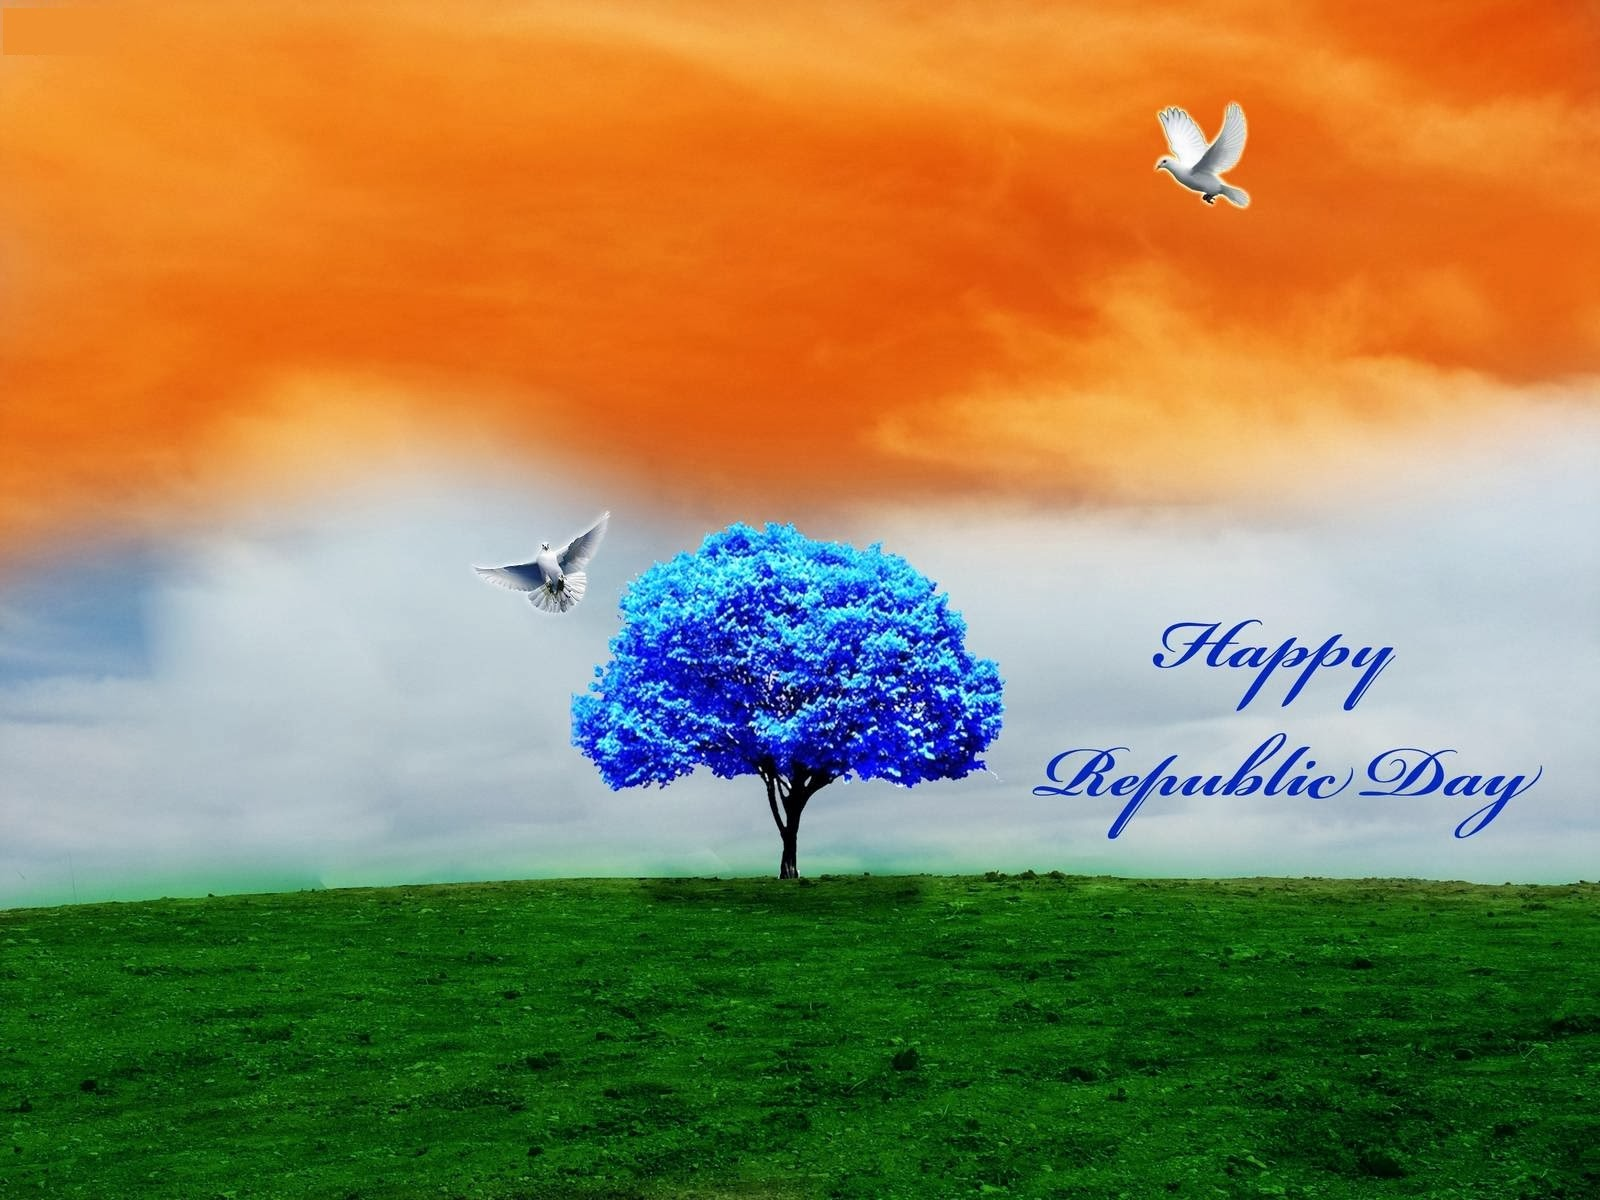 Happy Republic Day 2018 Images Hd Pics Download Photos For 26th January